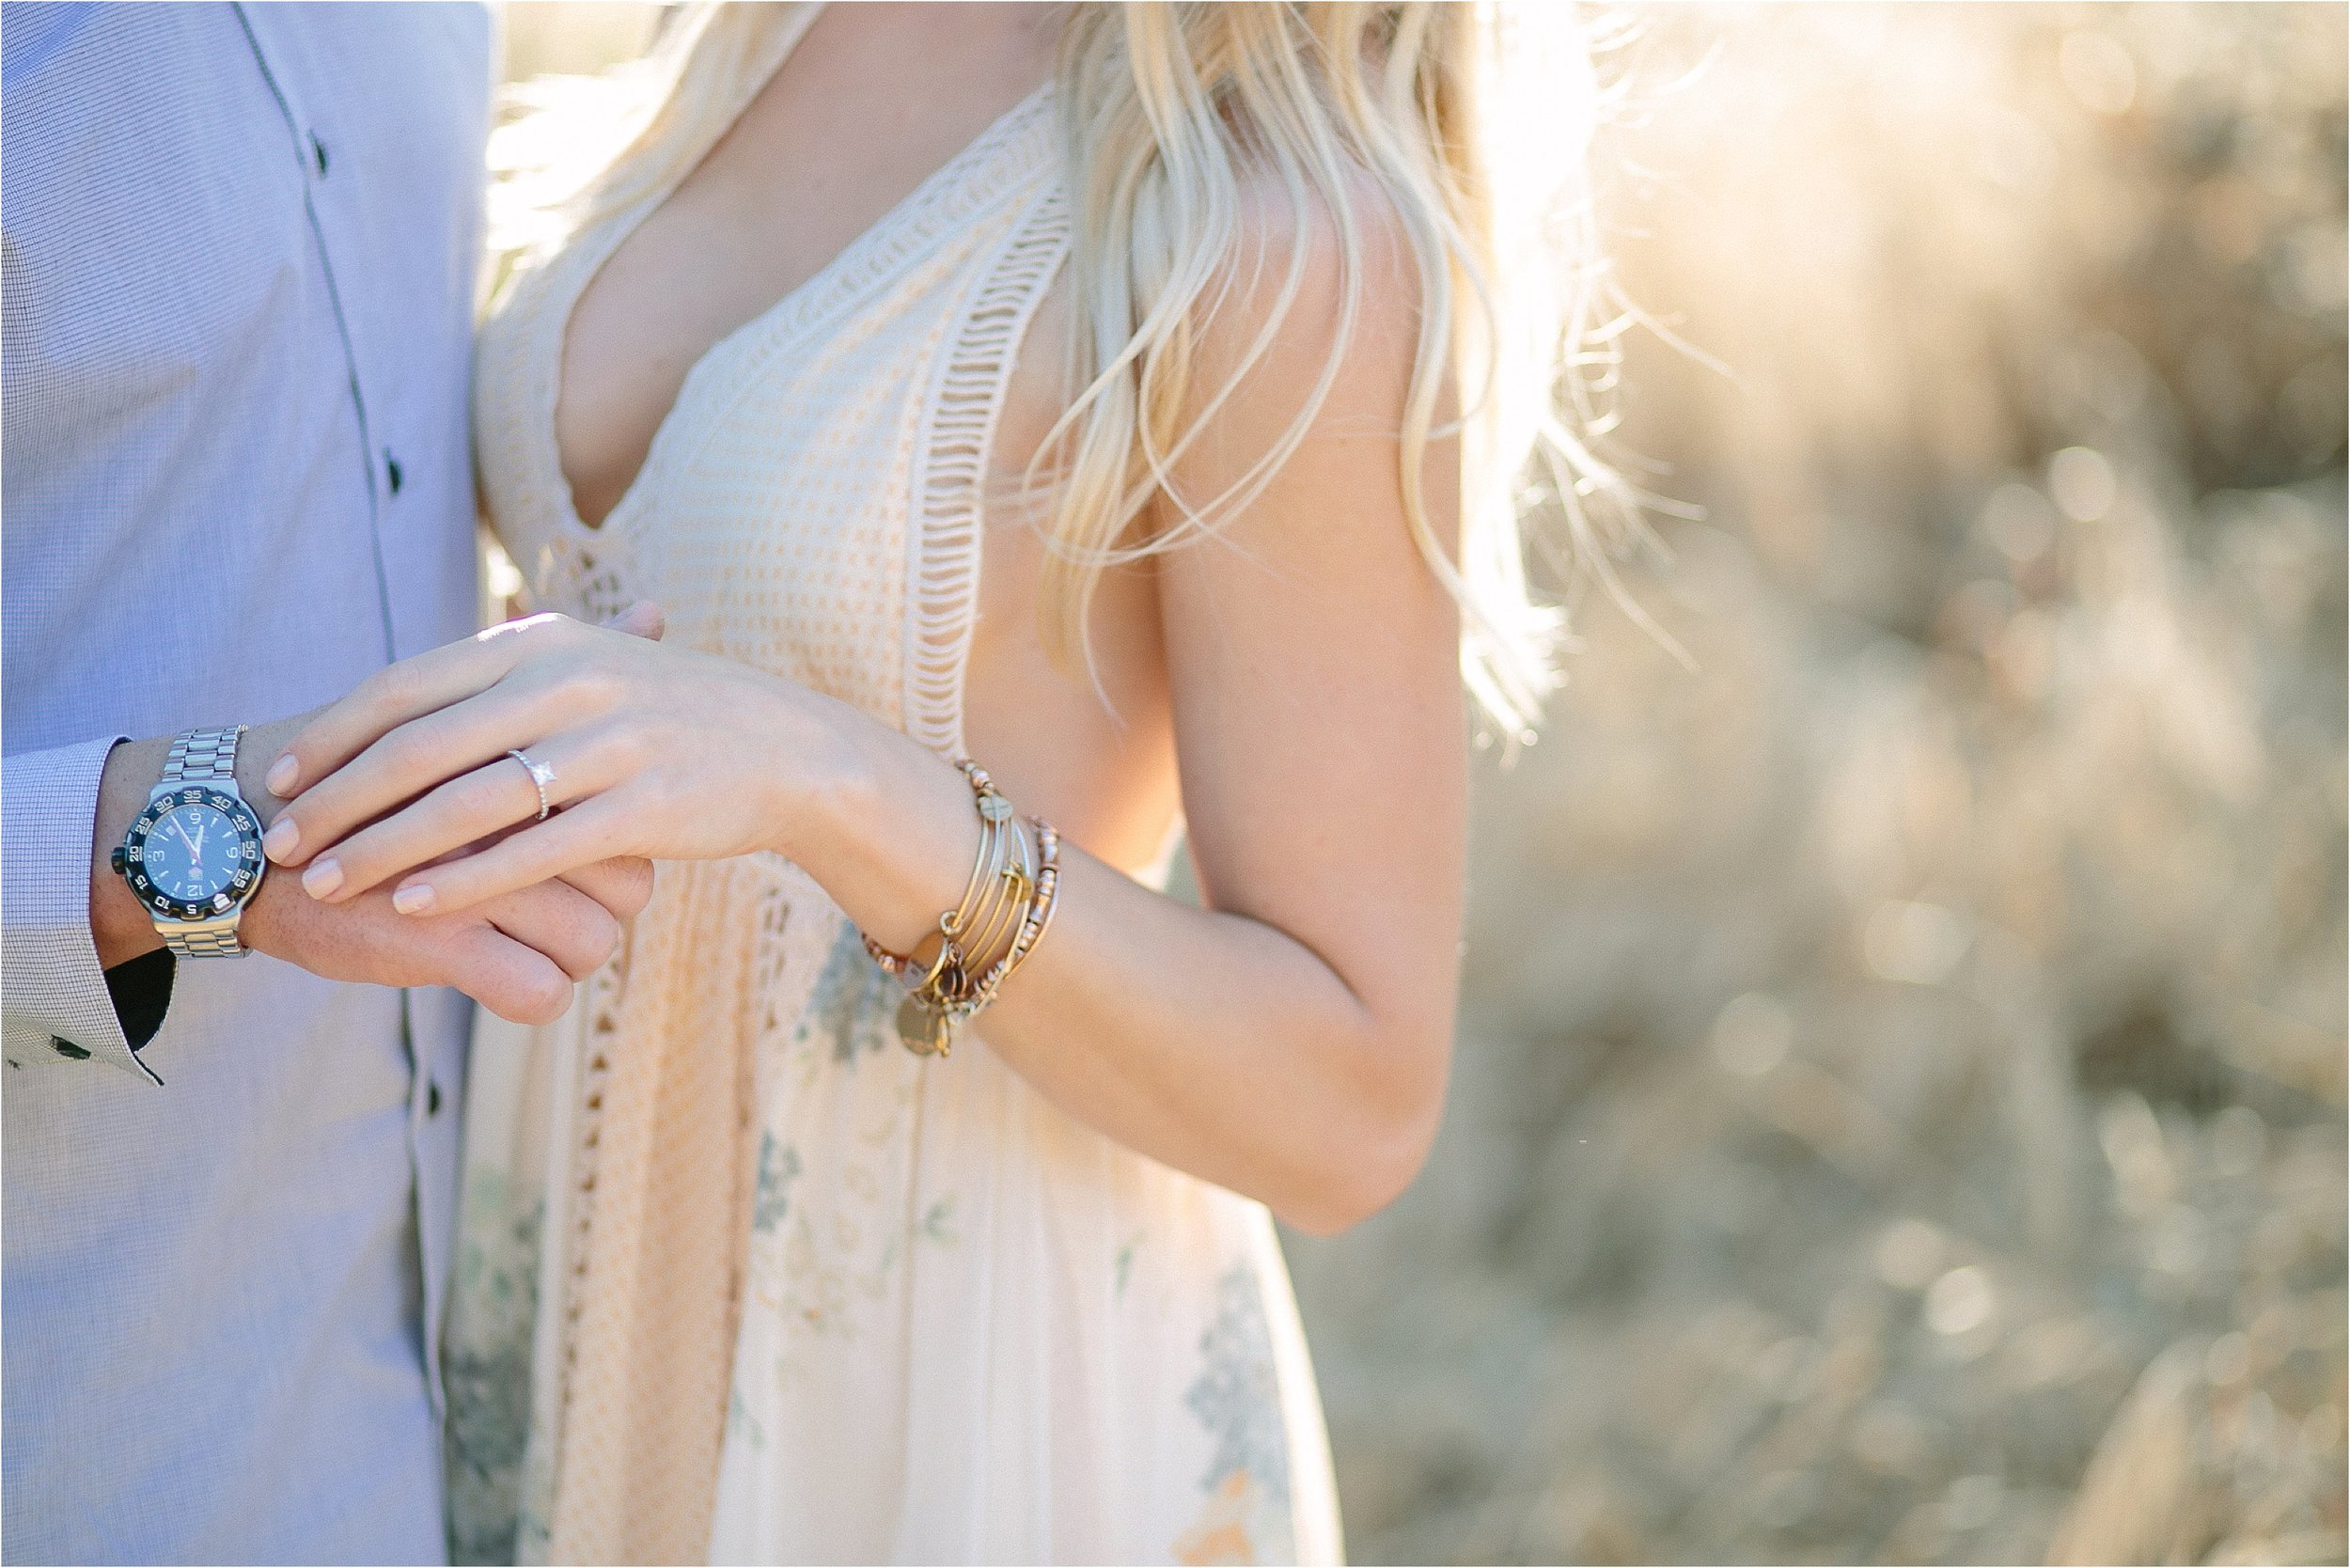 Santa Clarita Engagement Ring Detail Photo